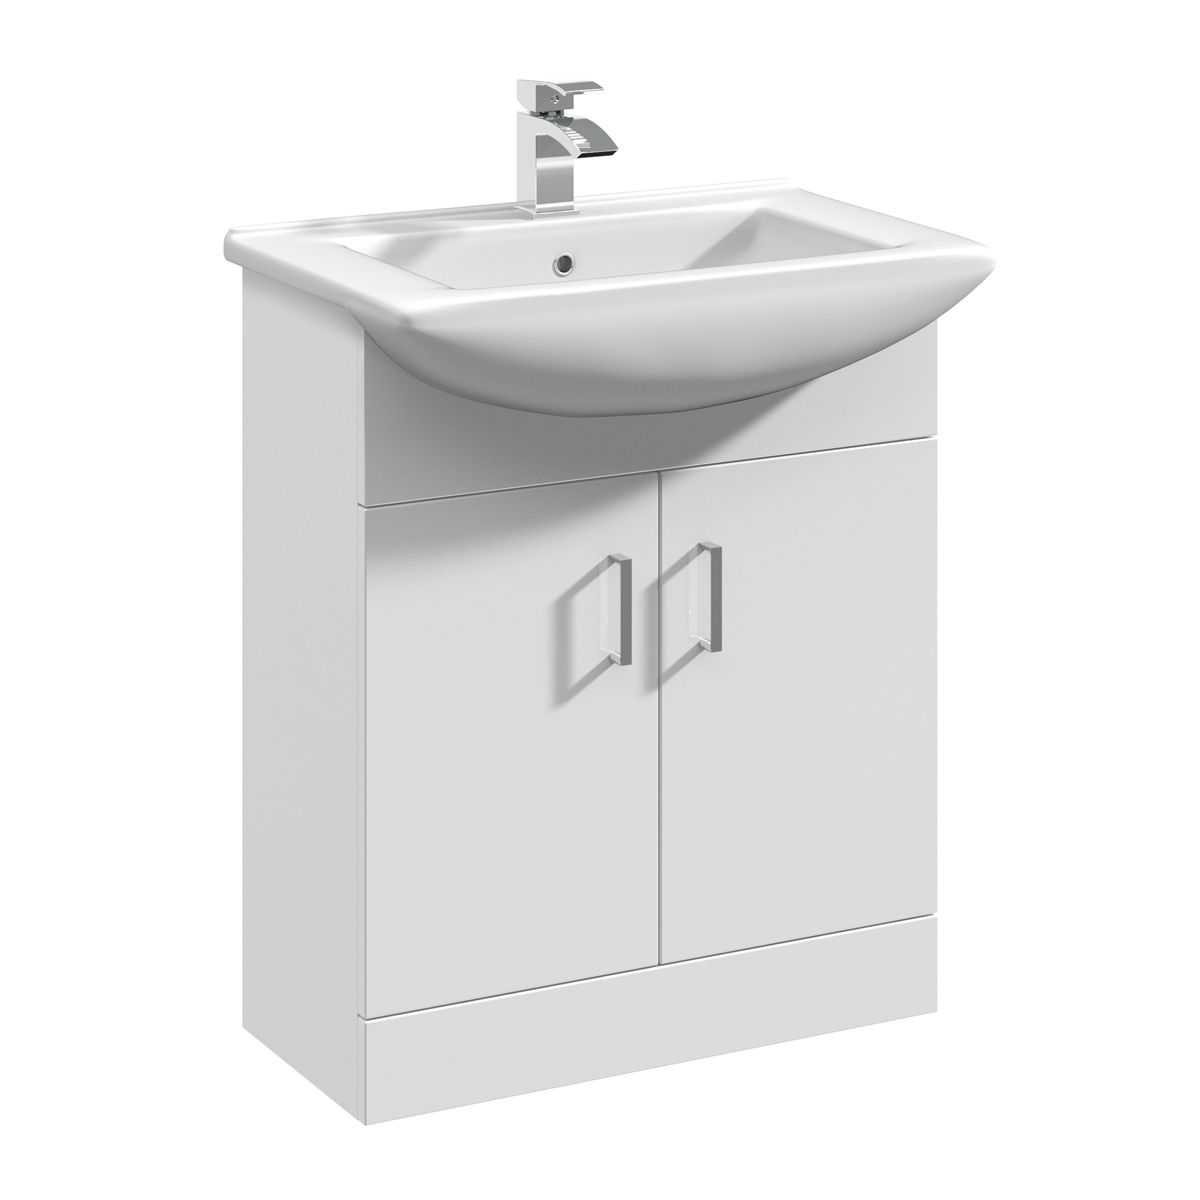 Nuie Deluxe High Gloss White Vanity Unit 650mm